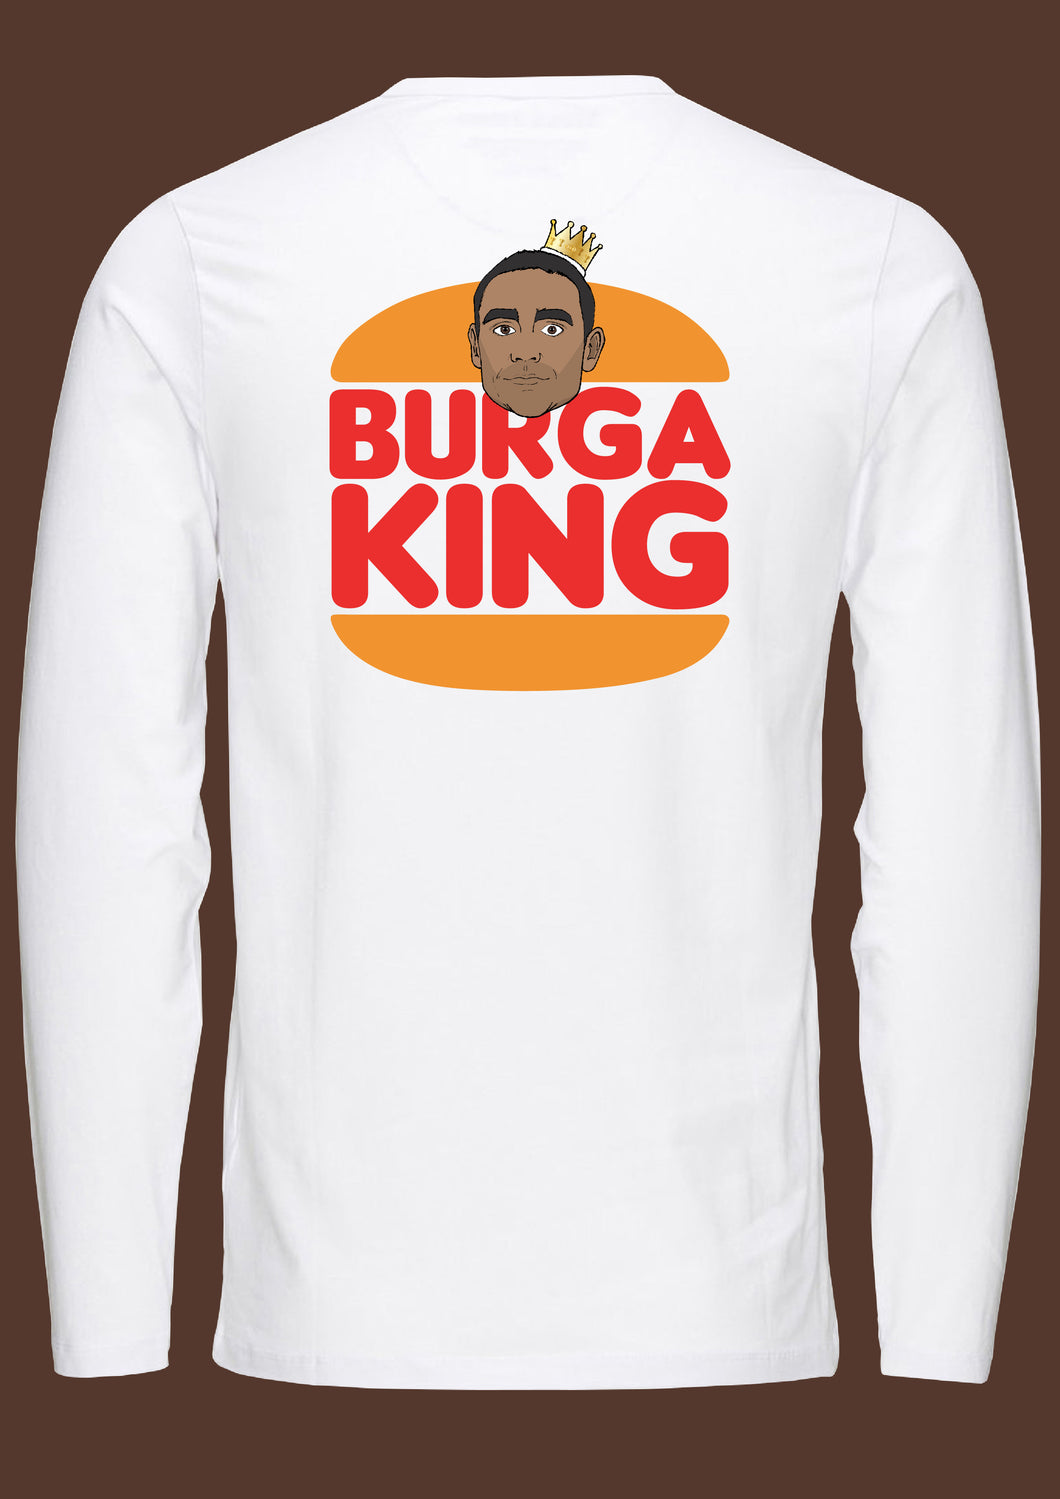 BURGA KING: LONG SLEEVE